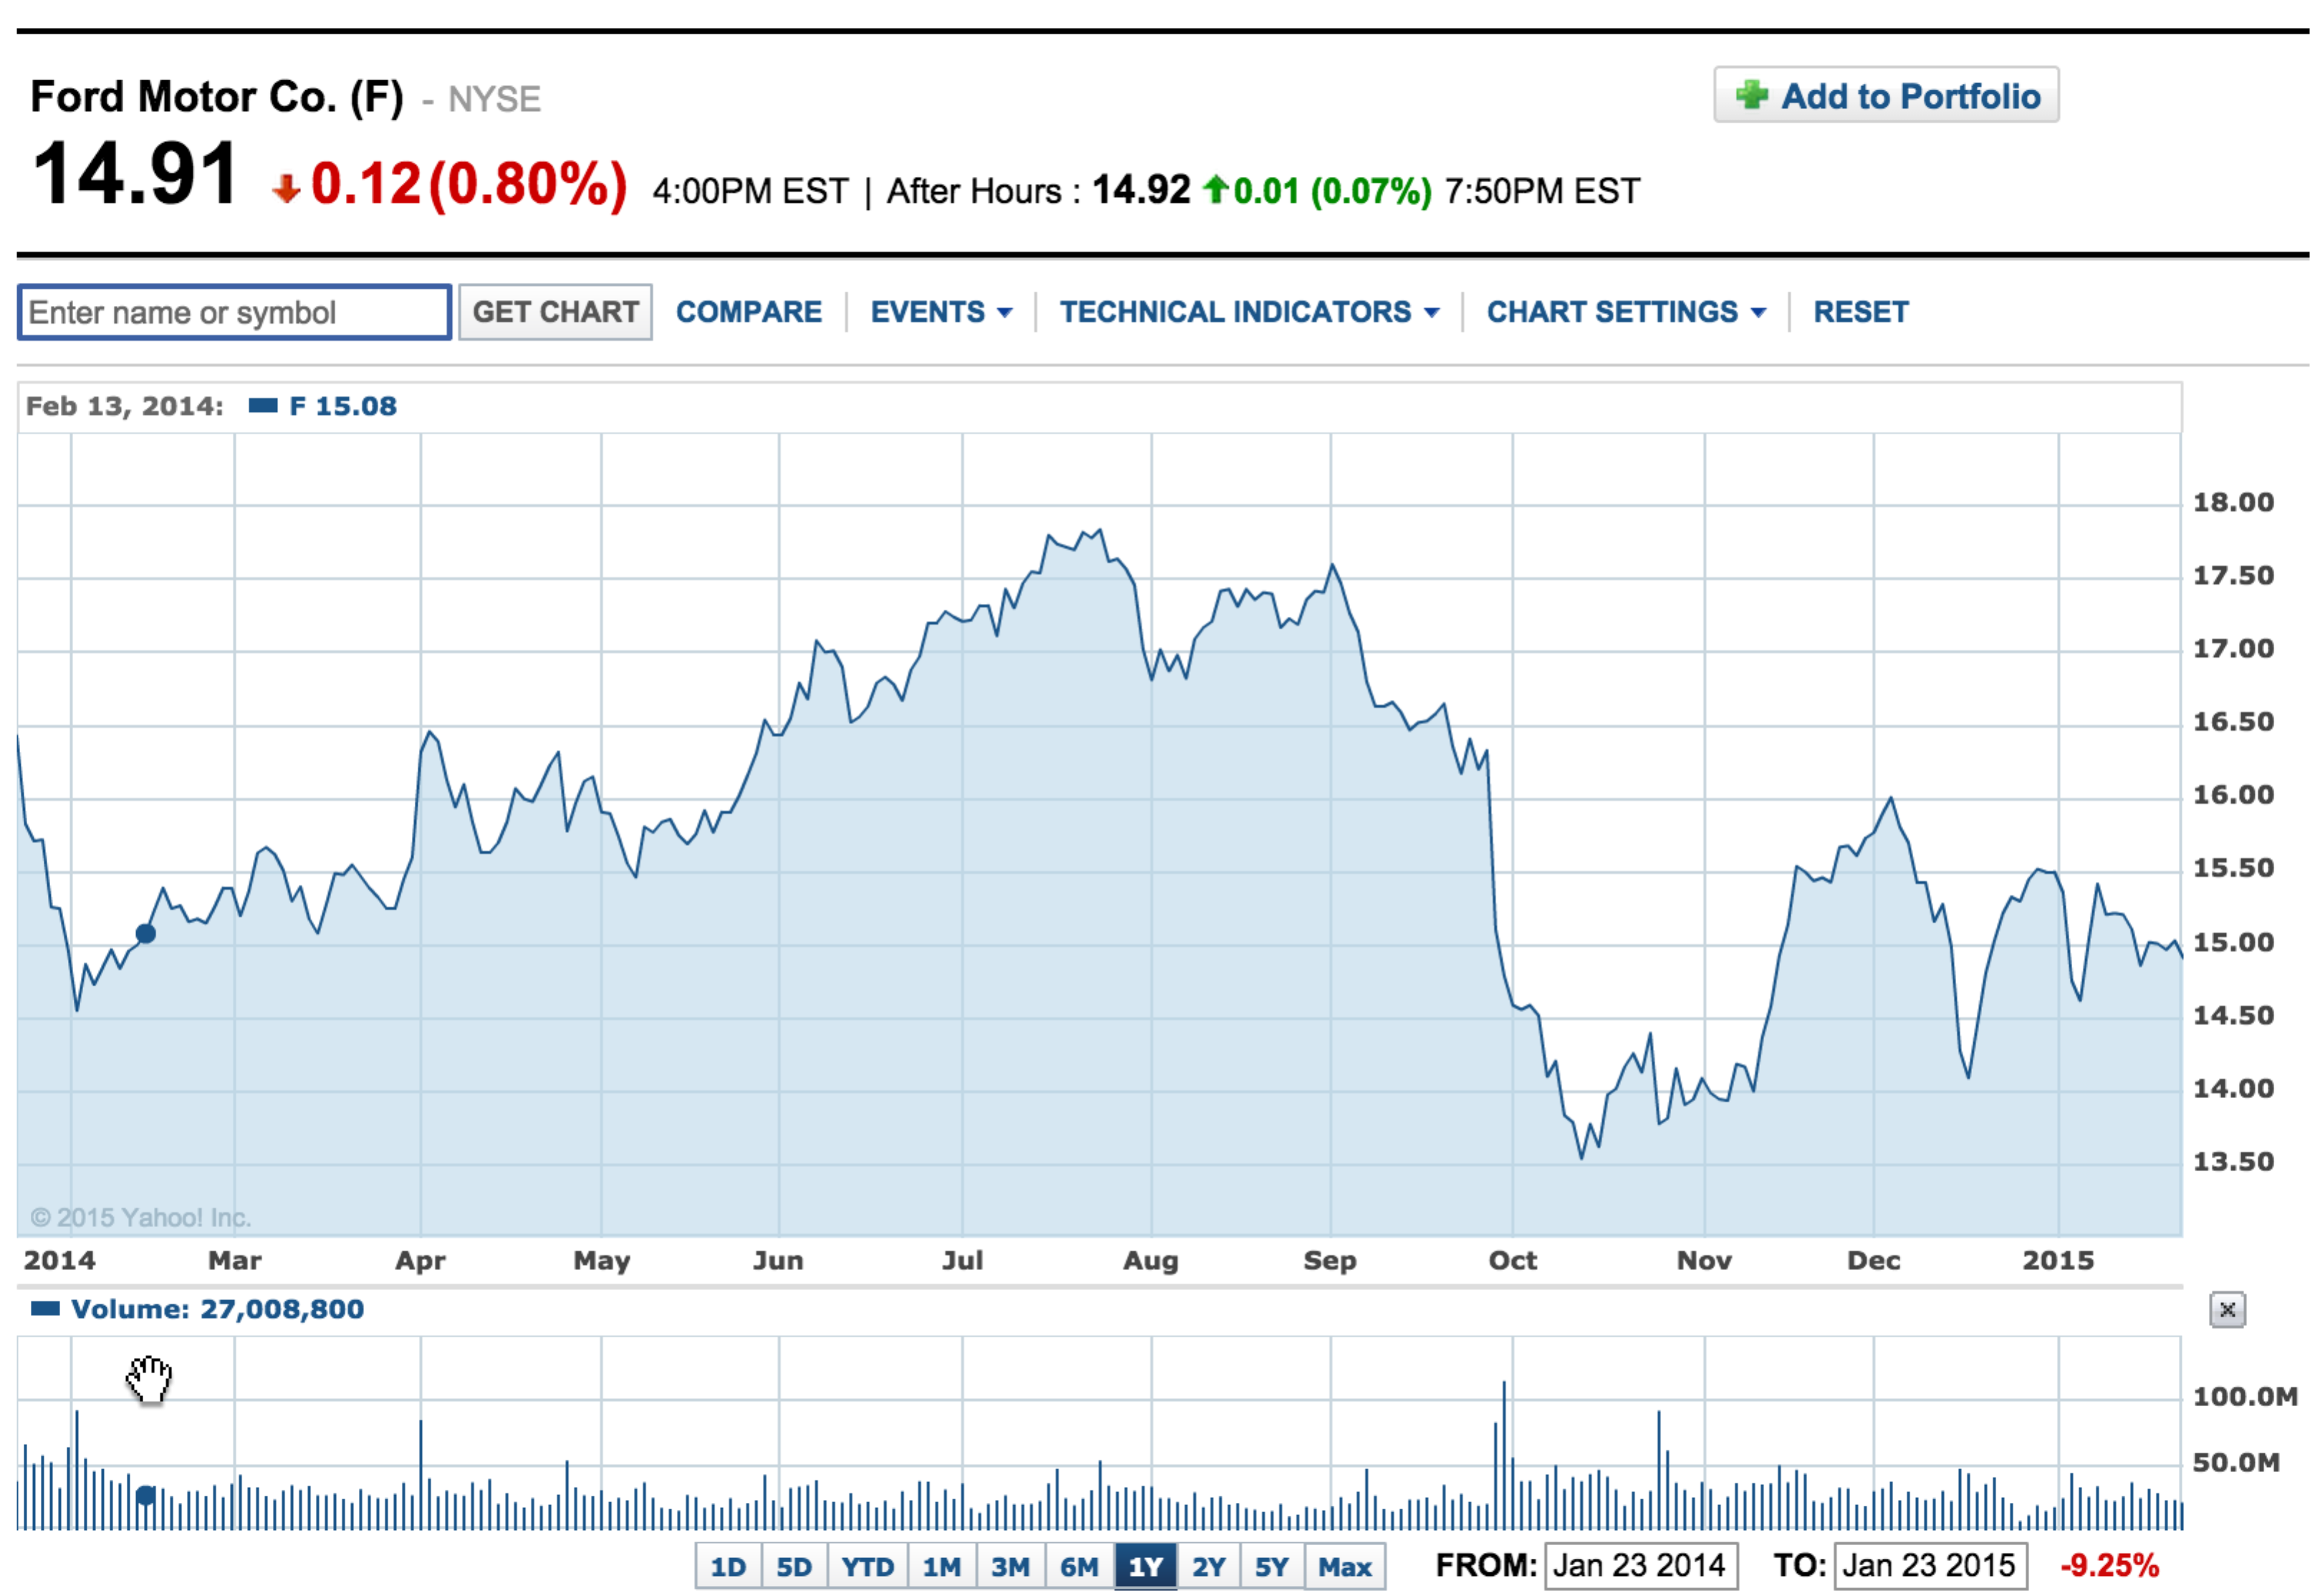 Yahoo Finance Stock Quotes Ford Stock Forecast For 2015 Based On A Predictive Algorithm